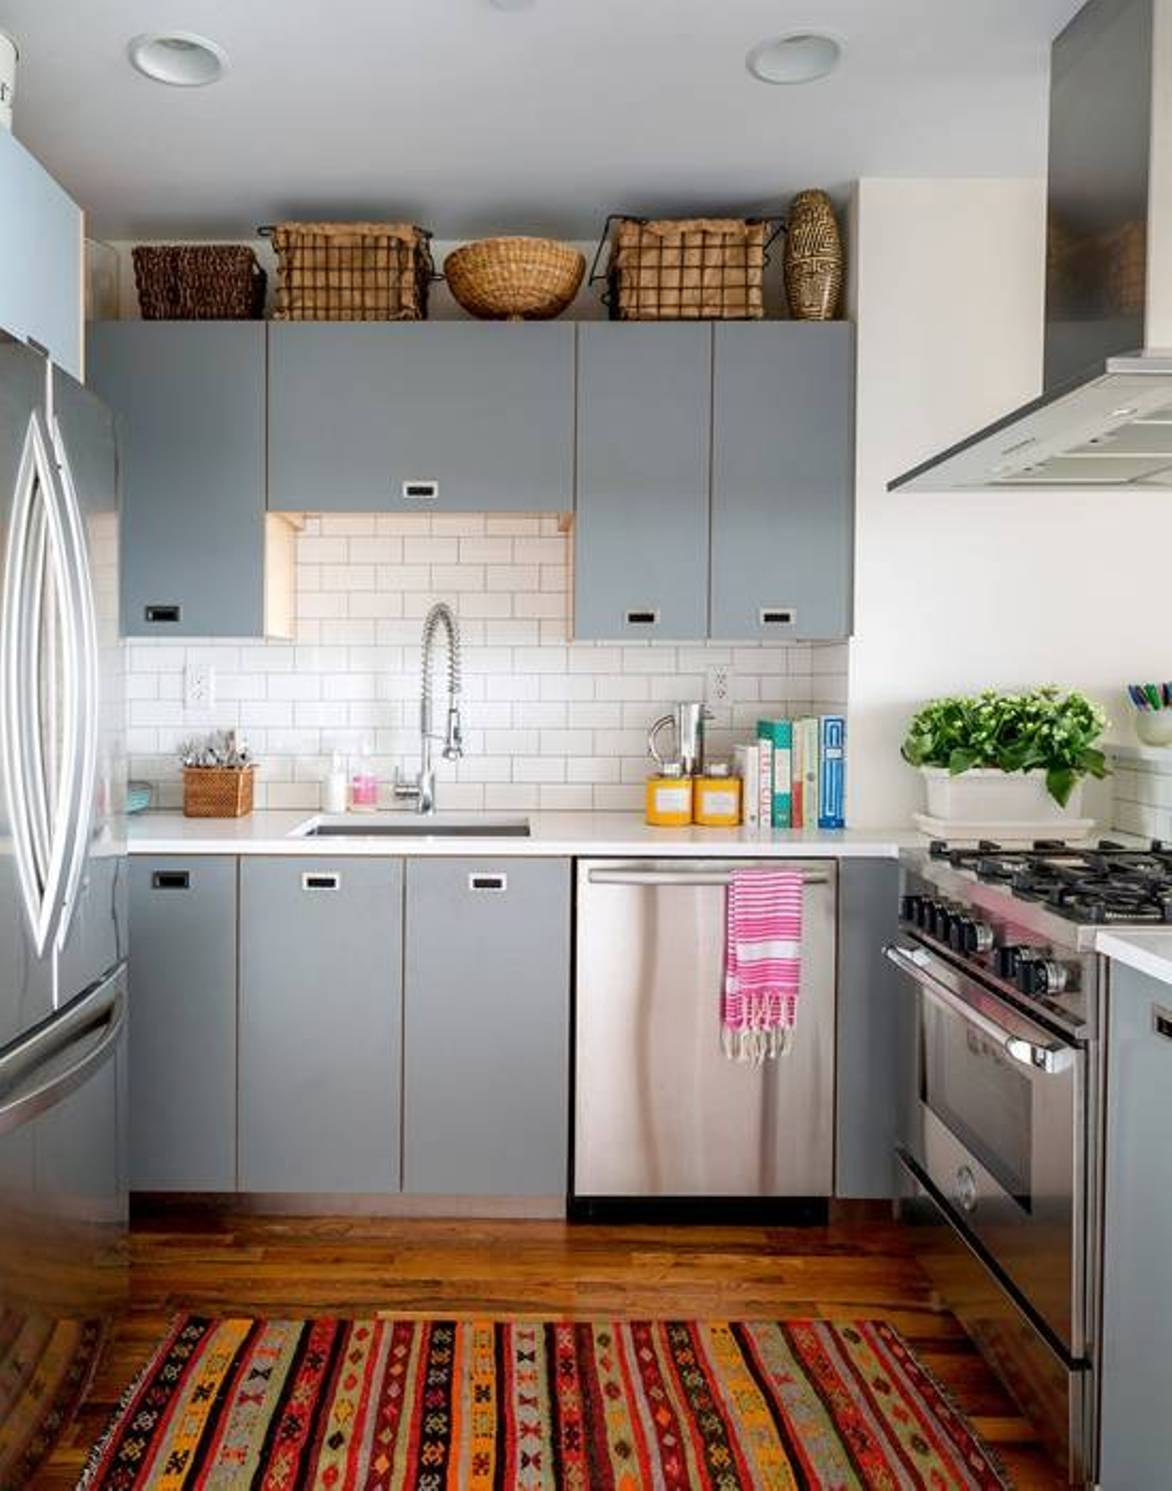 Beautiful abodes small kitchen loads of character for Small kitchen shelves